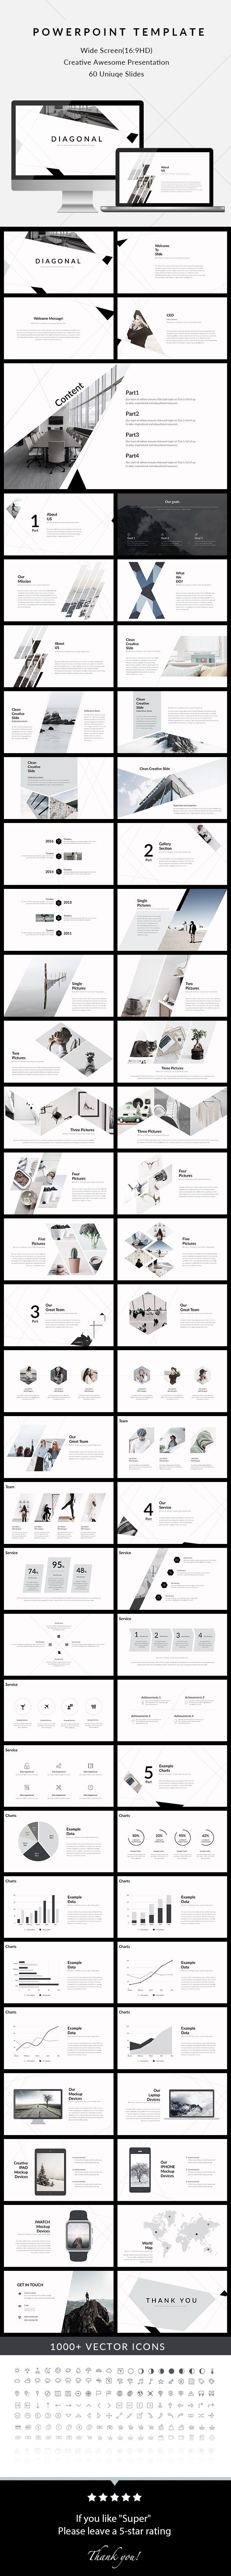 Diagonal - Clean & Creative PowerPoint Presentation #marketing #pptx template • Download ➝ https://graphicriver.net/item/diagonal-clean-creative-powerpoint-presentation/18038771?ref=pxcr